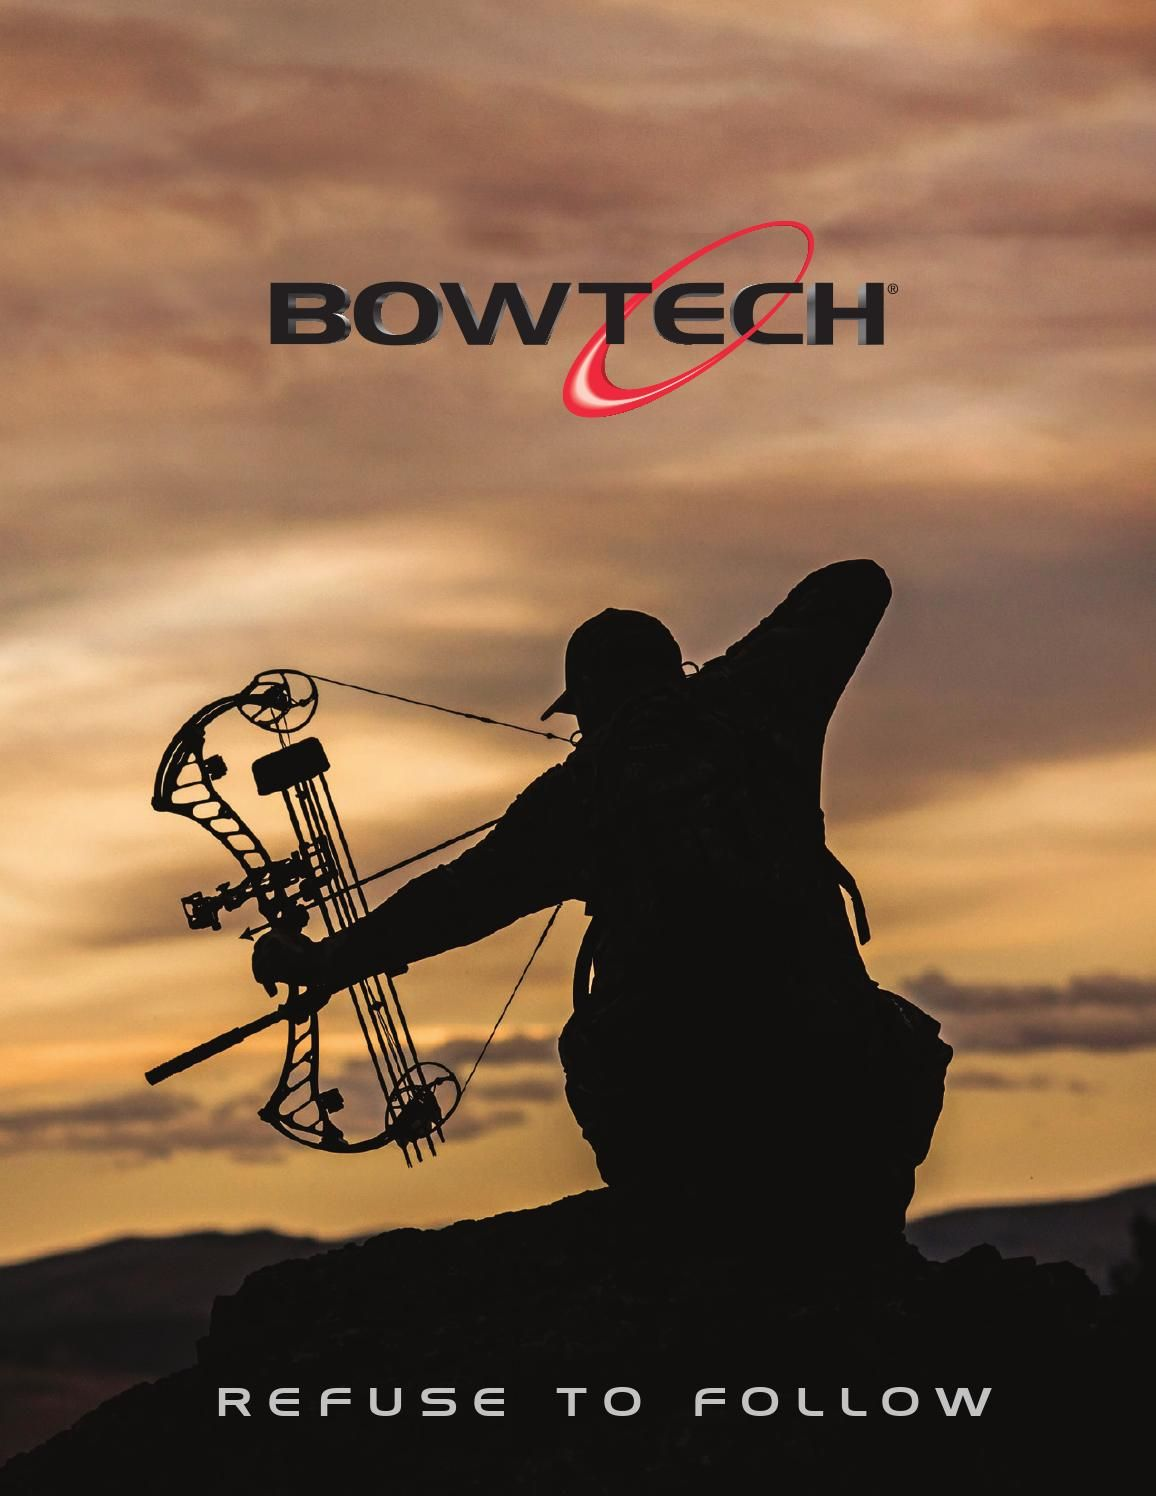 Bowtech 2015 Catalog Archery hunting, Hunting decal